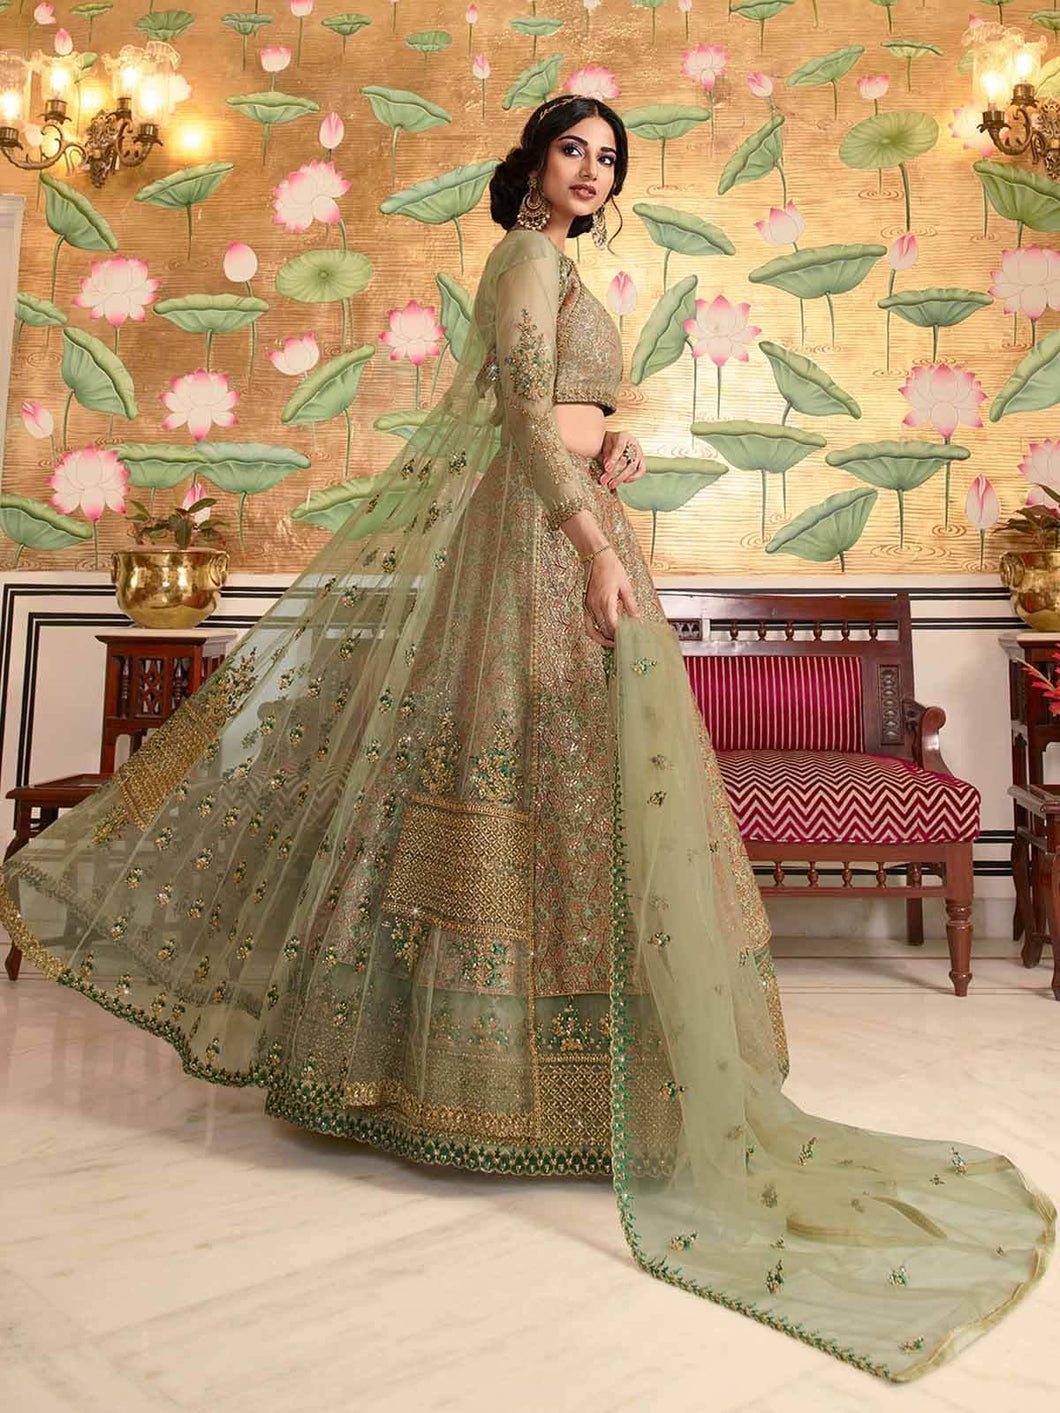 Green Semi-Stitched Lehenga Choli Set with Long Jacket